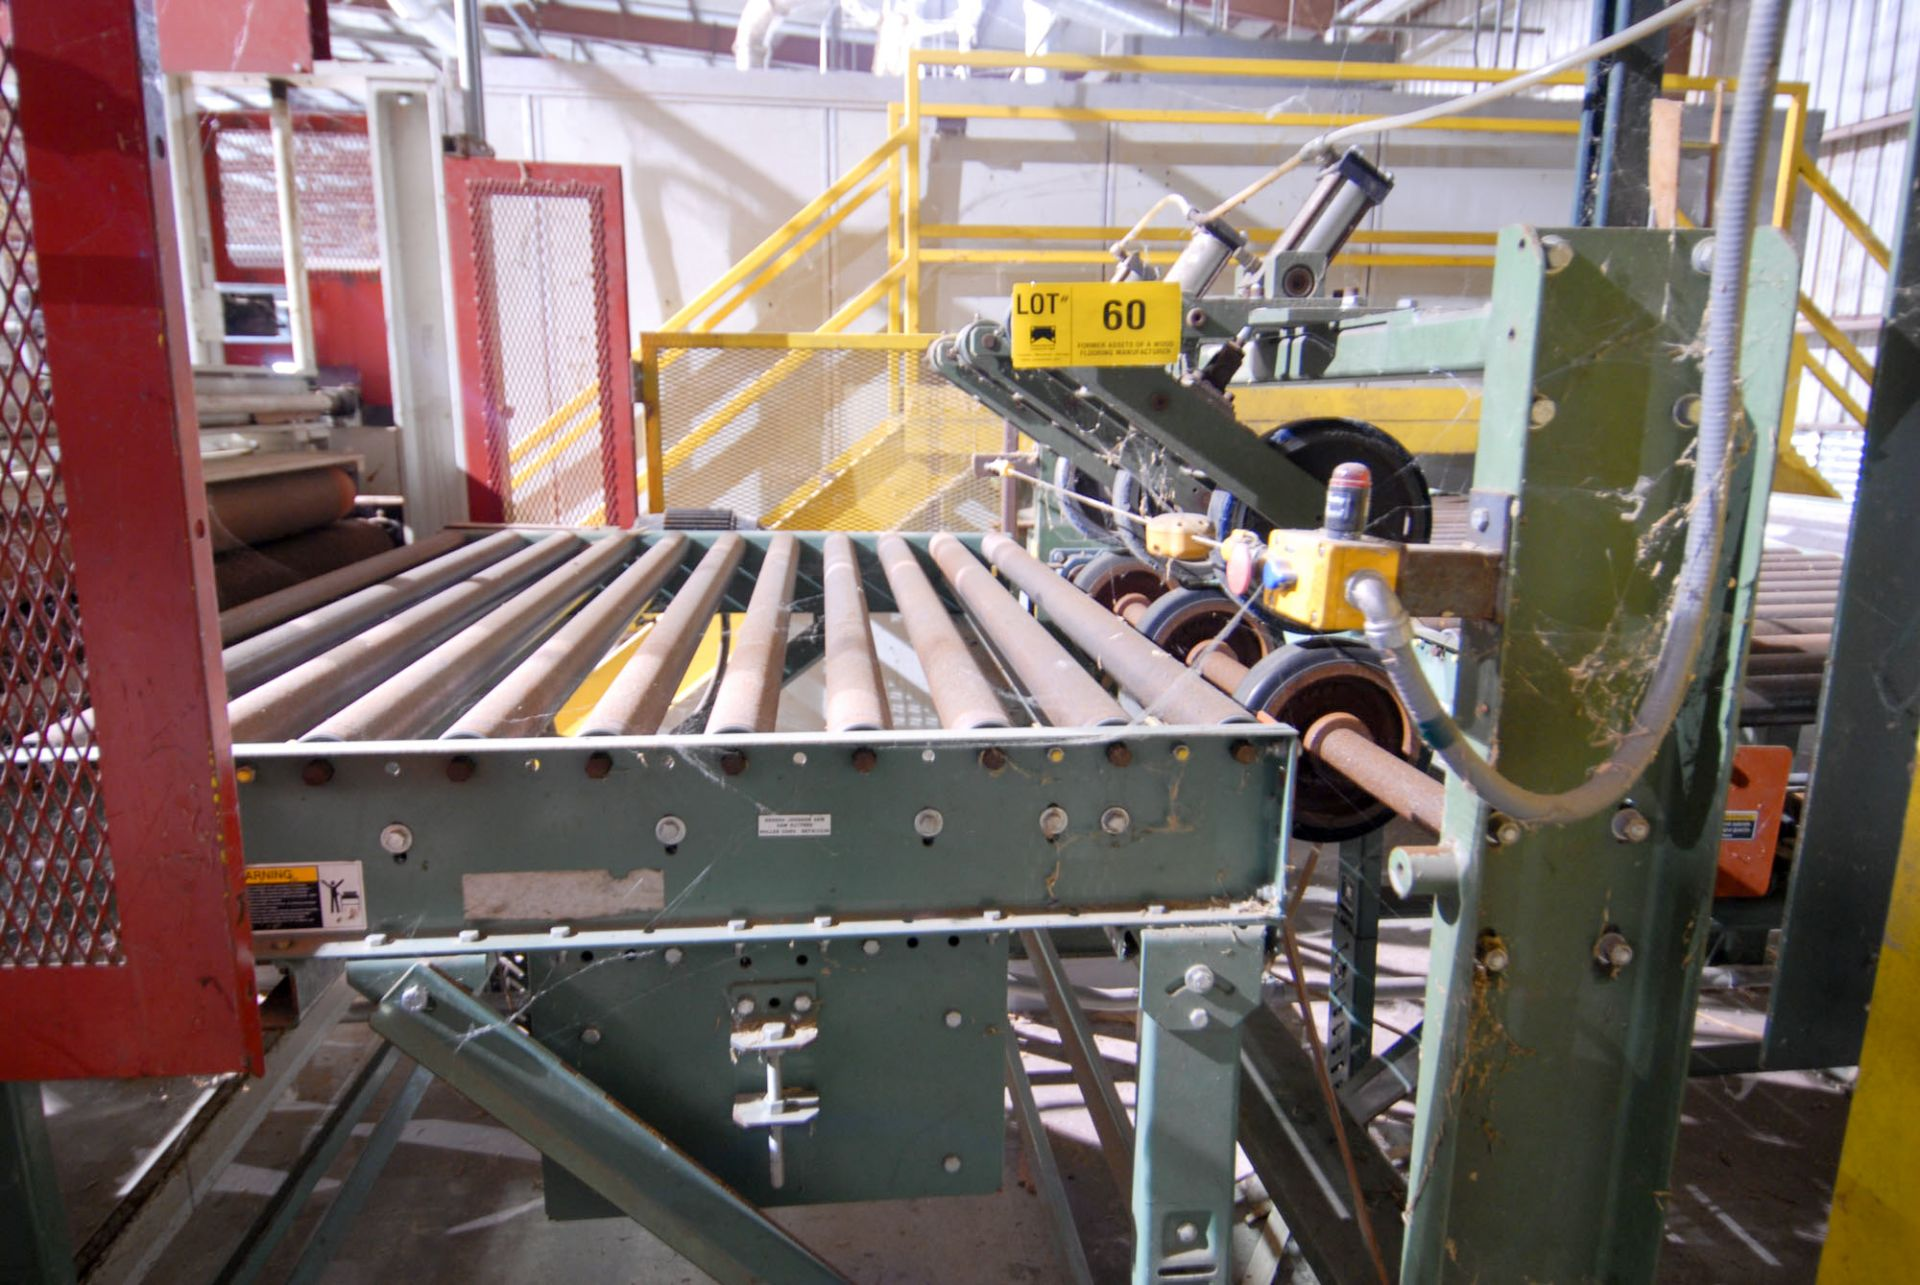 """Lot 60 - 48"""" X 66"""" OUT-FEED ROLLER CONVEYOR WITH PINCH ROLL FEEDER (CI)"""